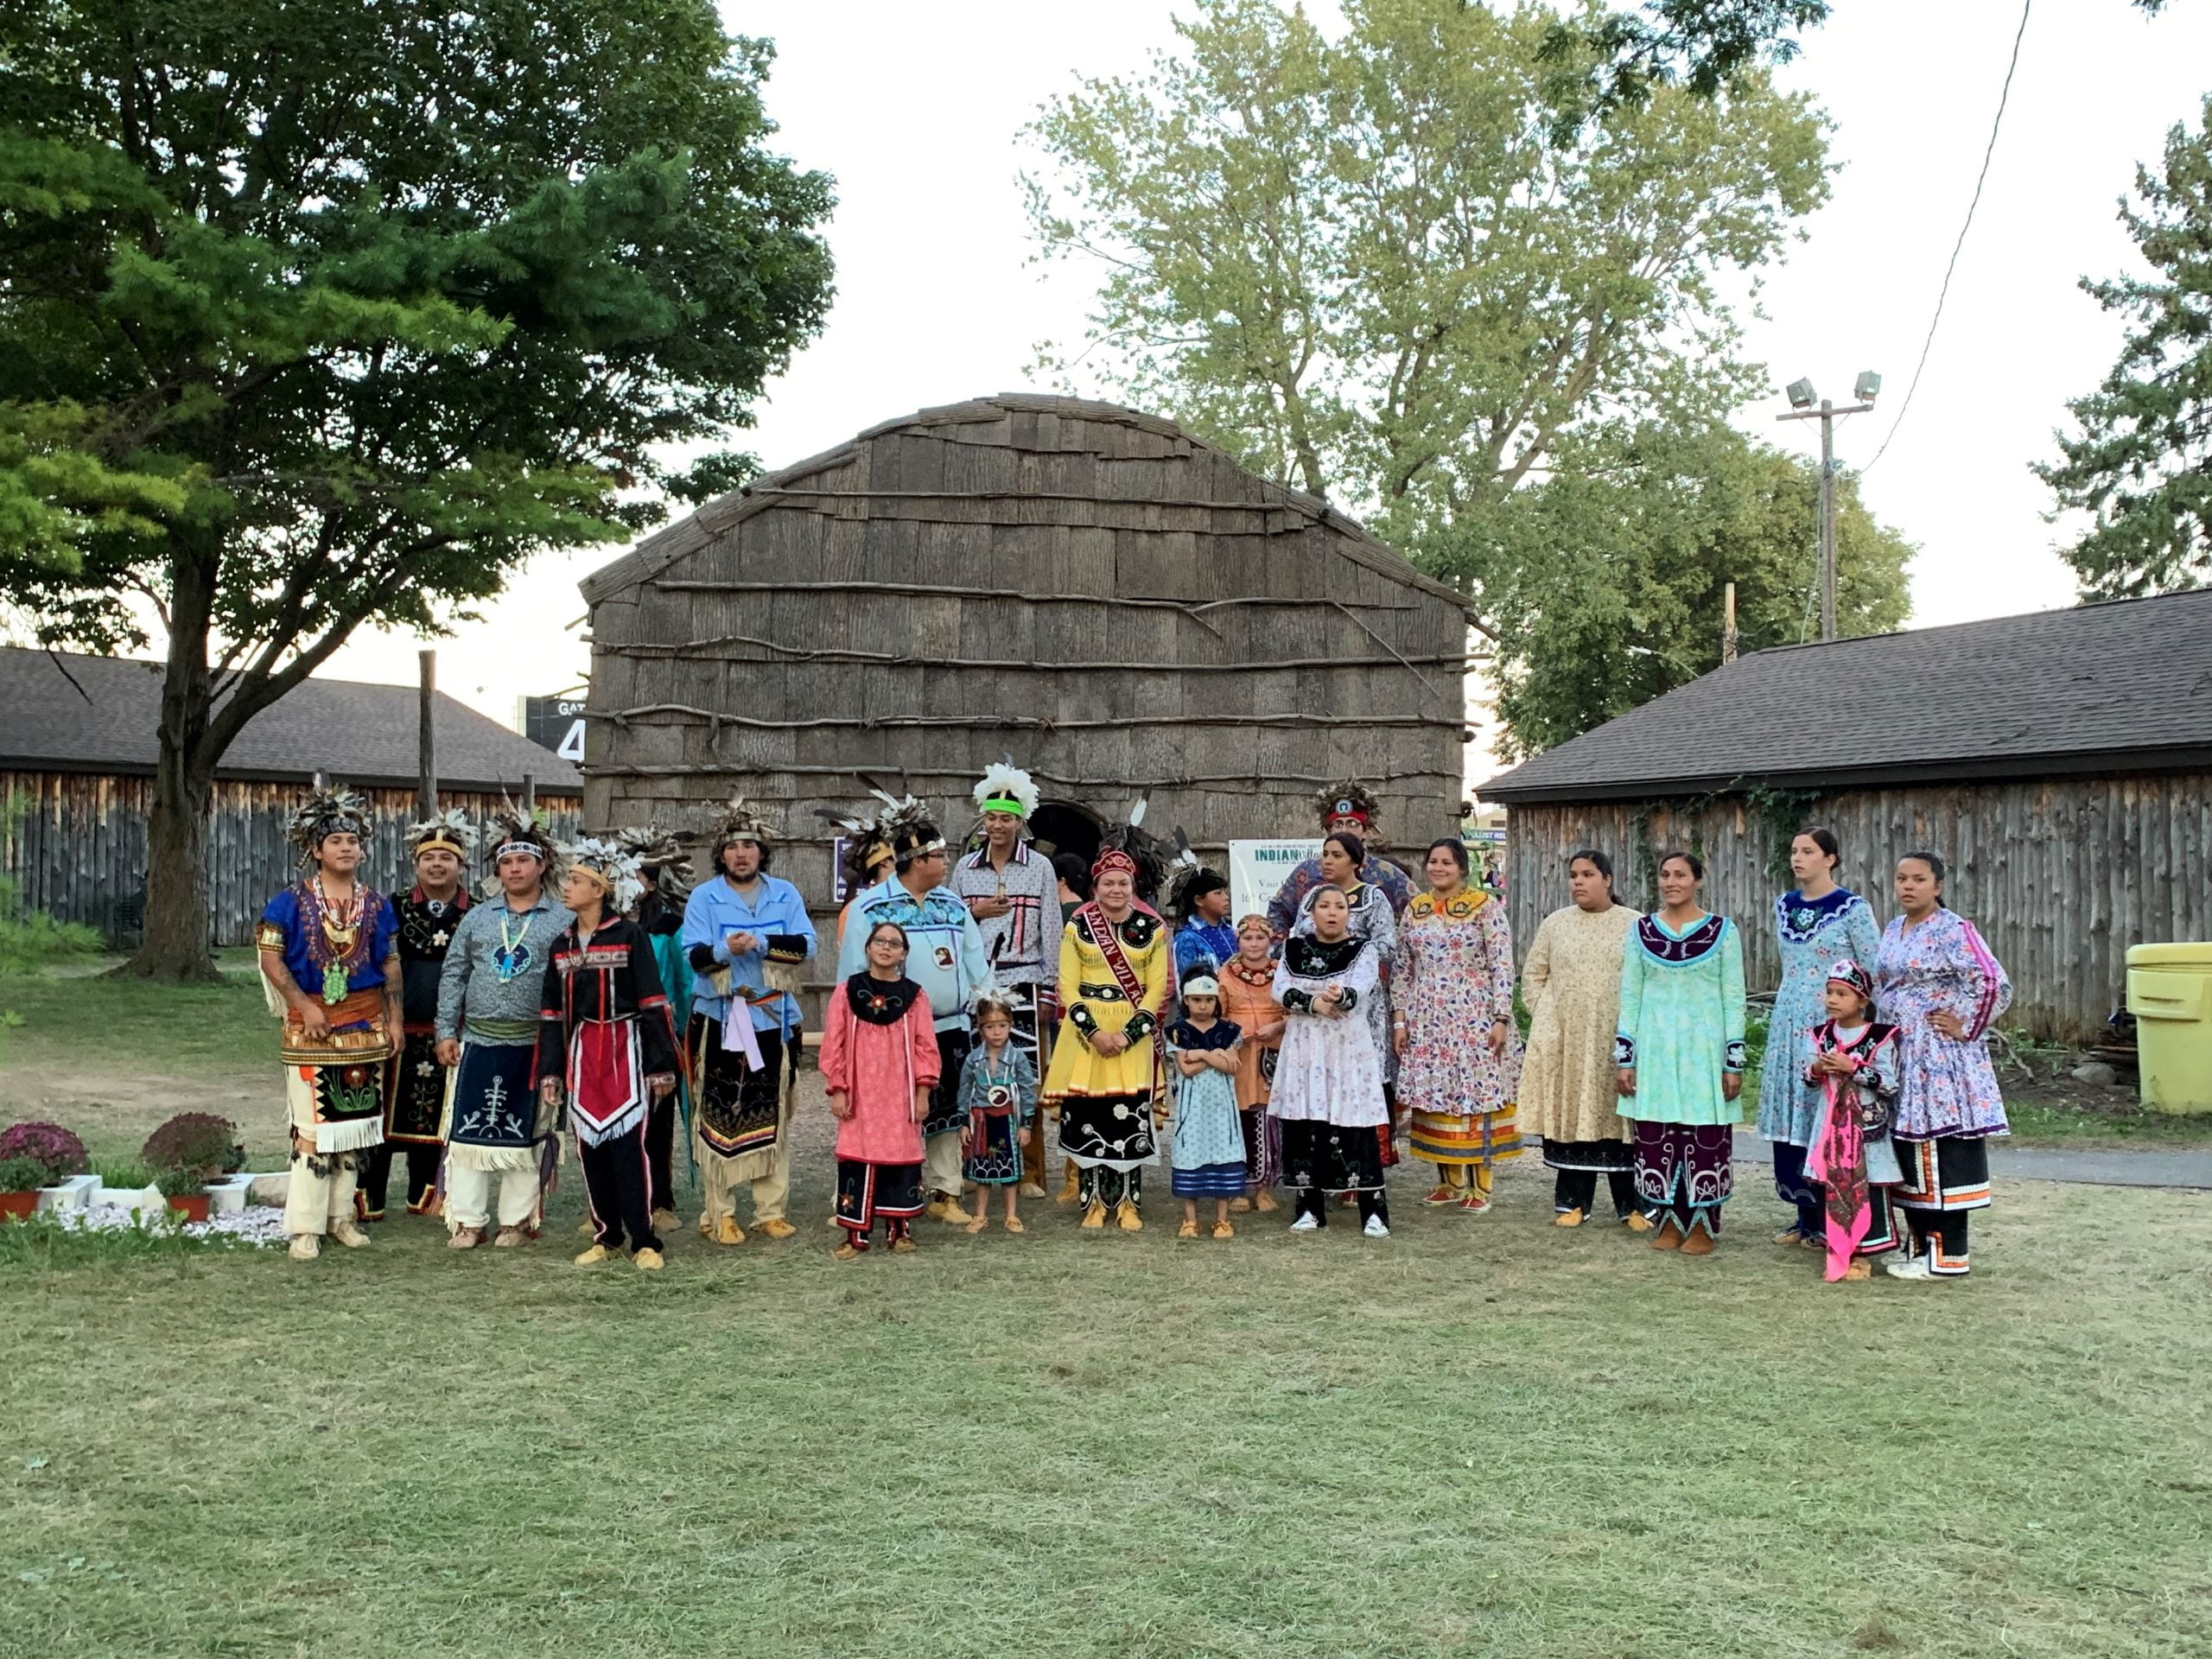 Indian Village @ New York State Fairgrounds